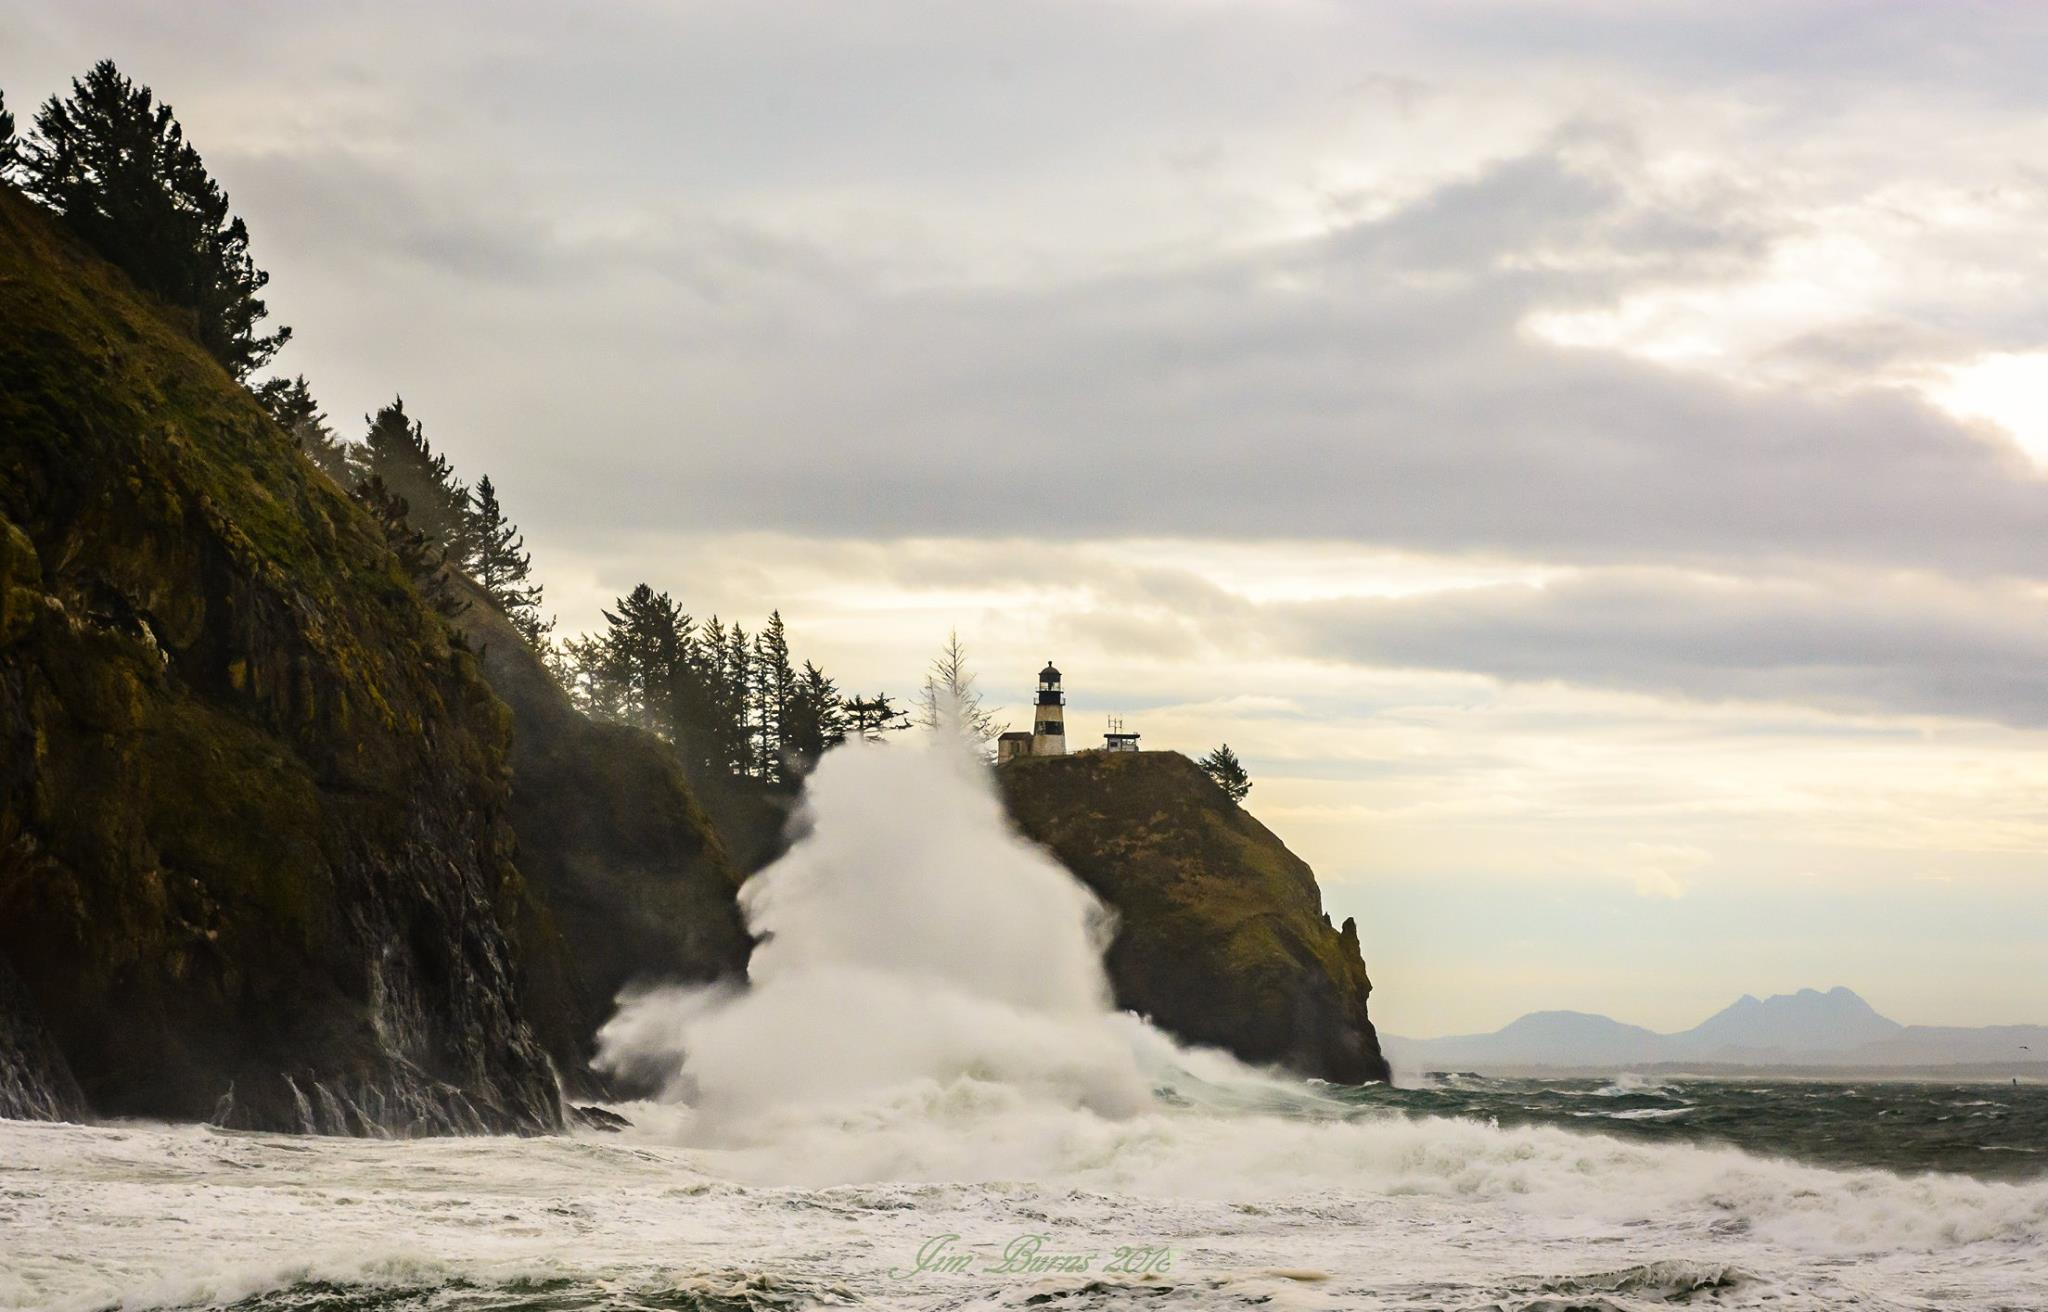 Large waves crash into the rocky shores of Cape Disappointment (Photo: Jim Burns)